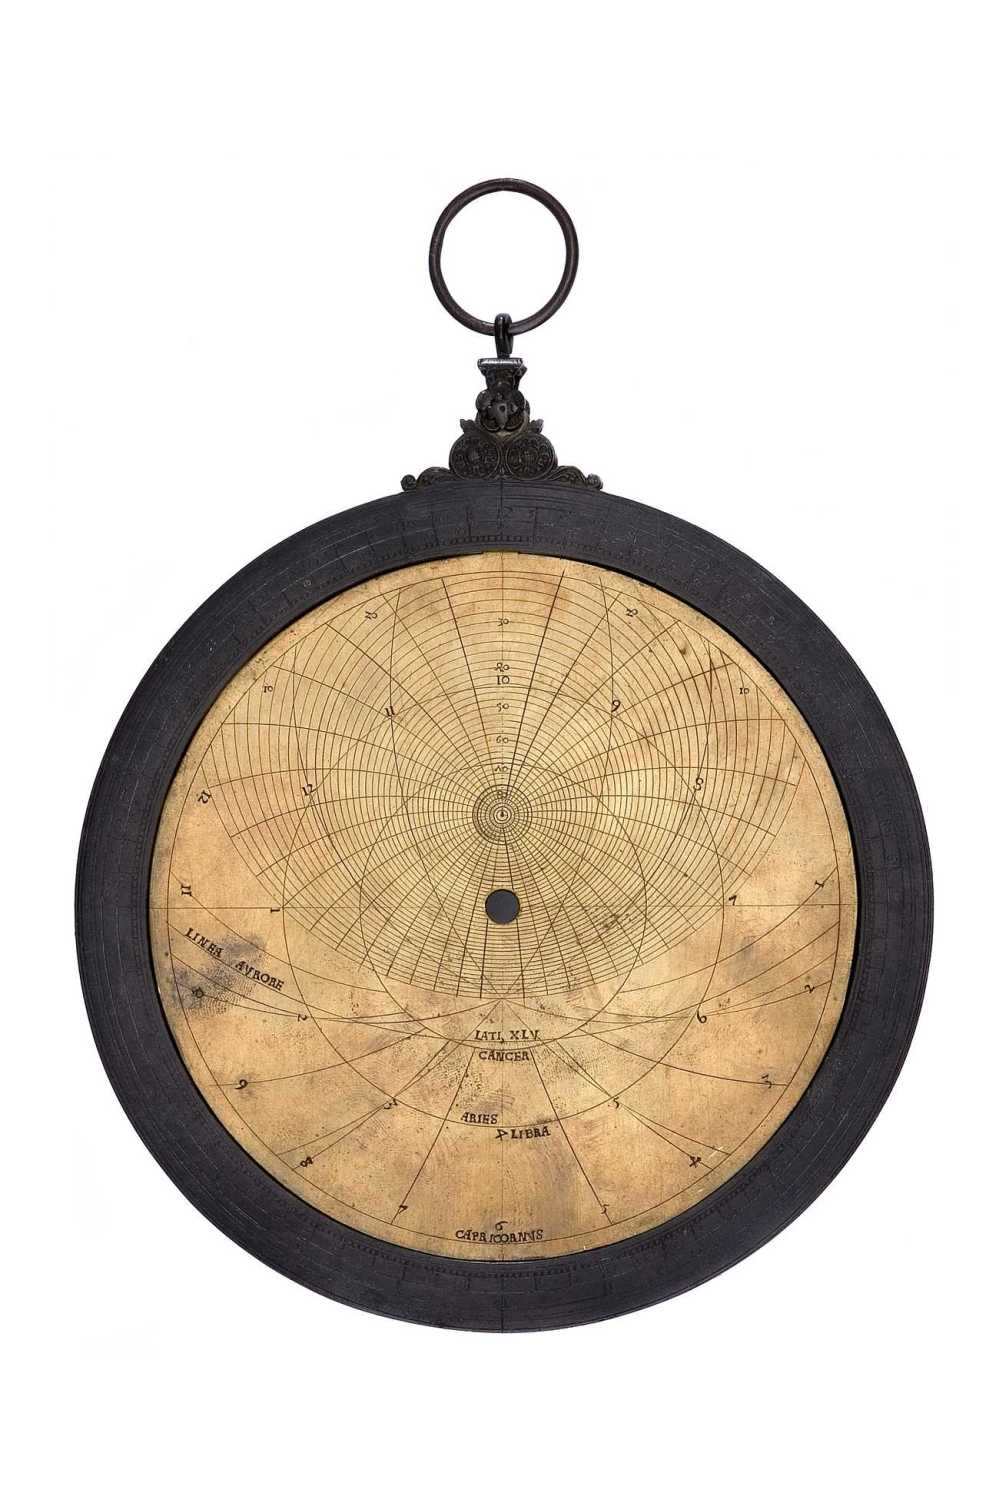 preview image for Astrolabe, by Georg Hartmann, Nuremberg, 1527